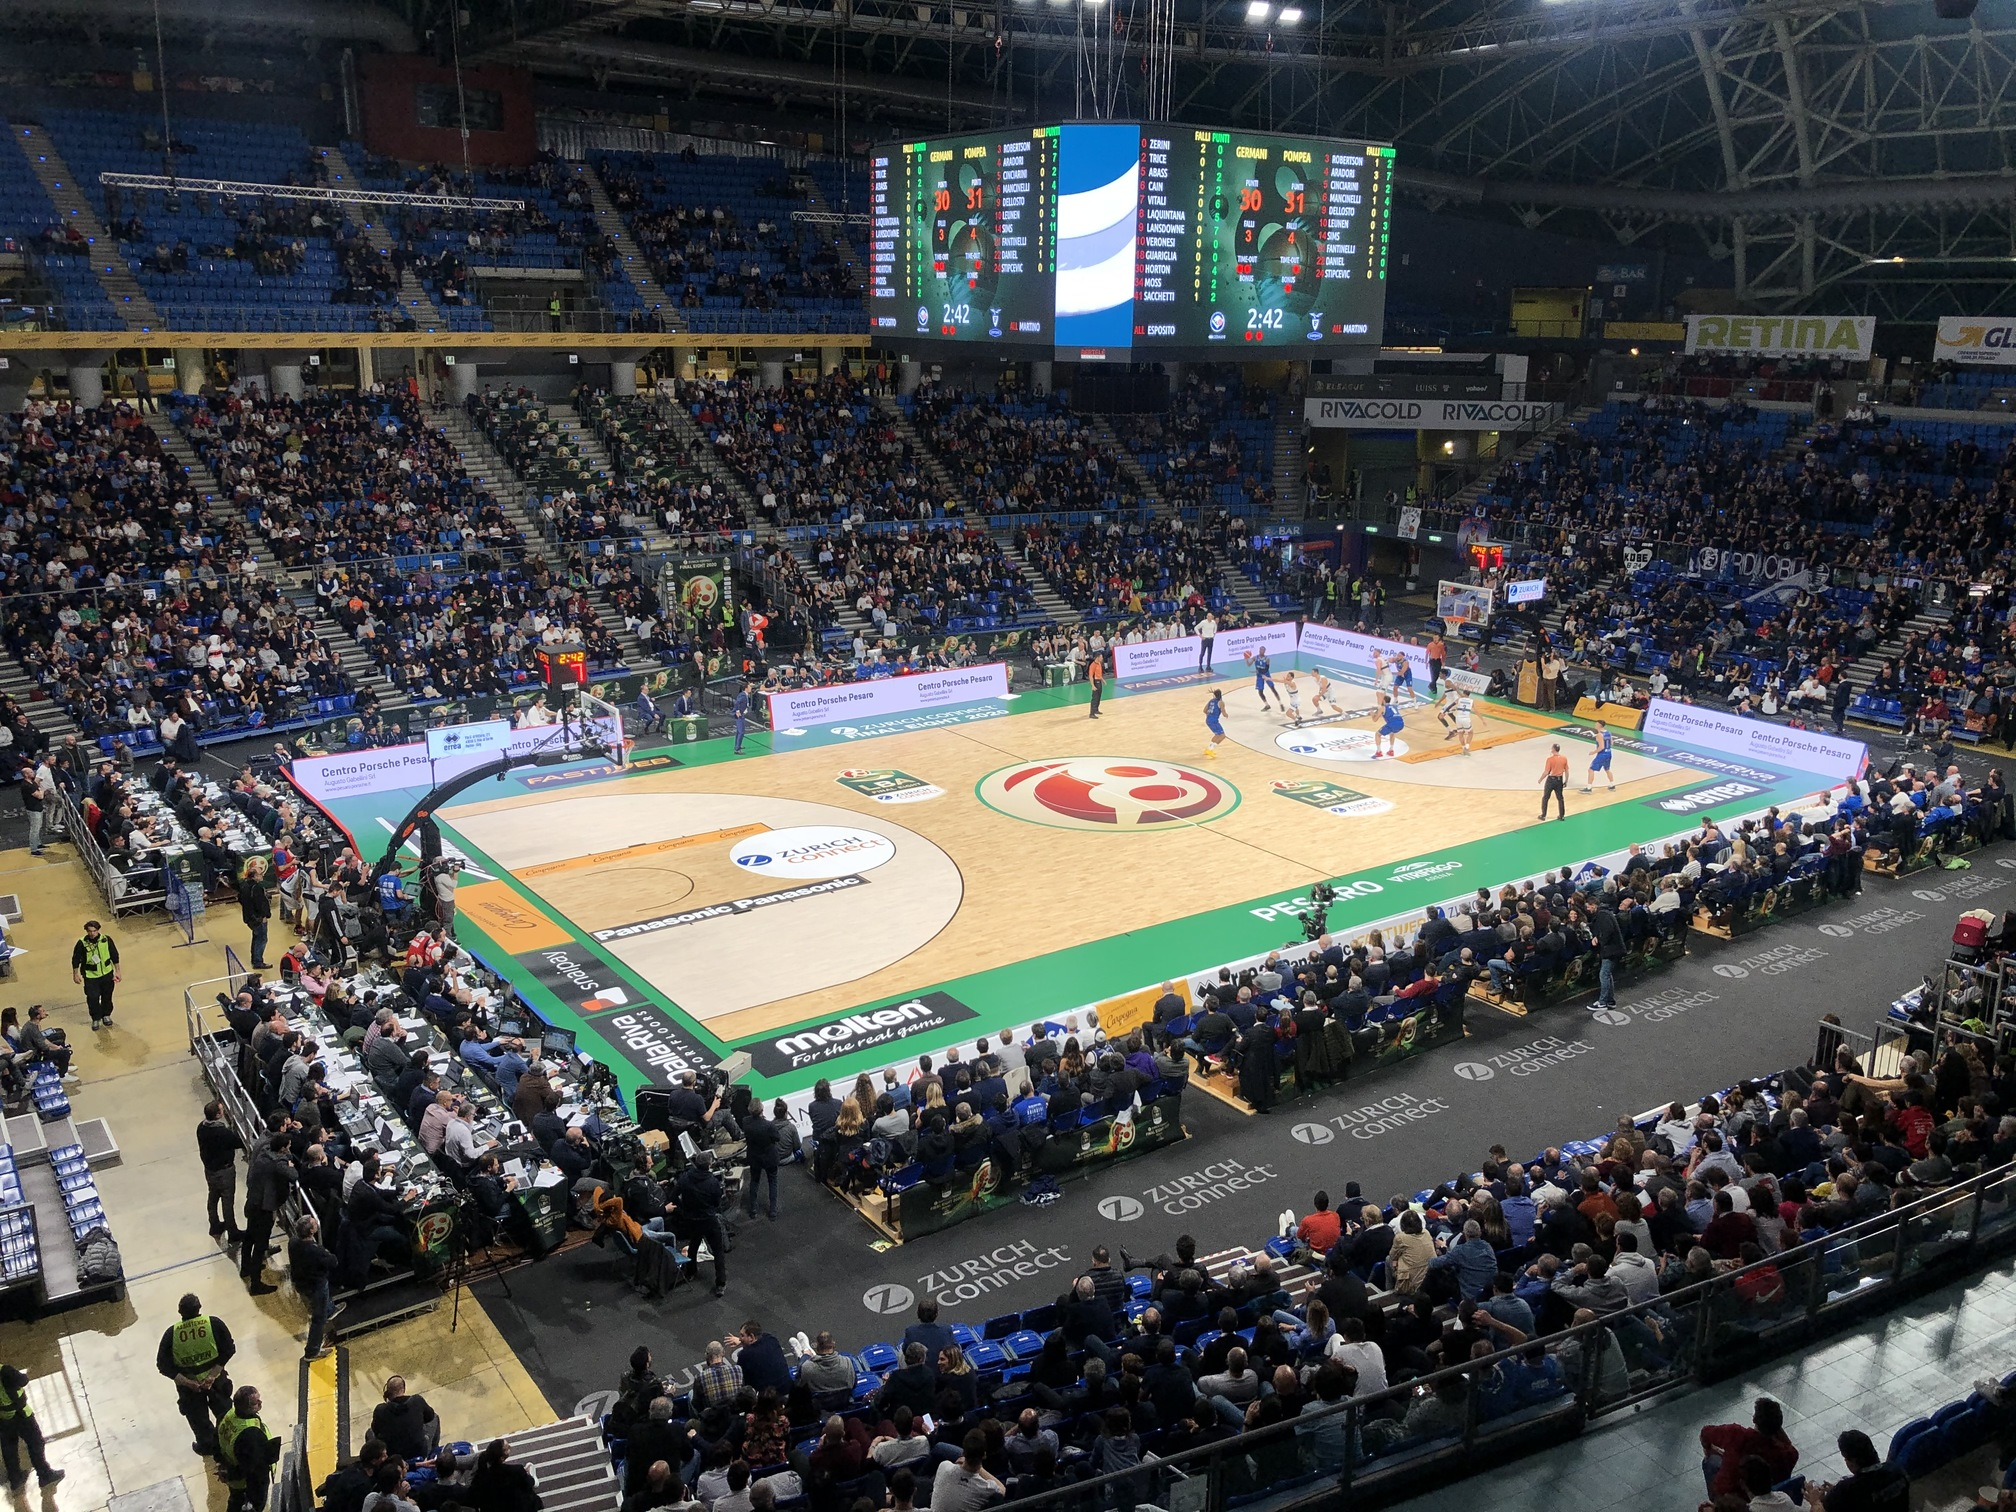 Germani Brescia and Fortitudo Bologna challenge each other on the removable Dalla Riva parquet